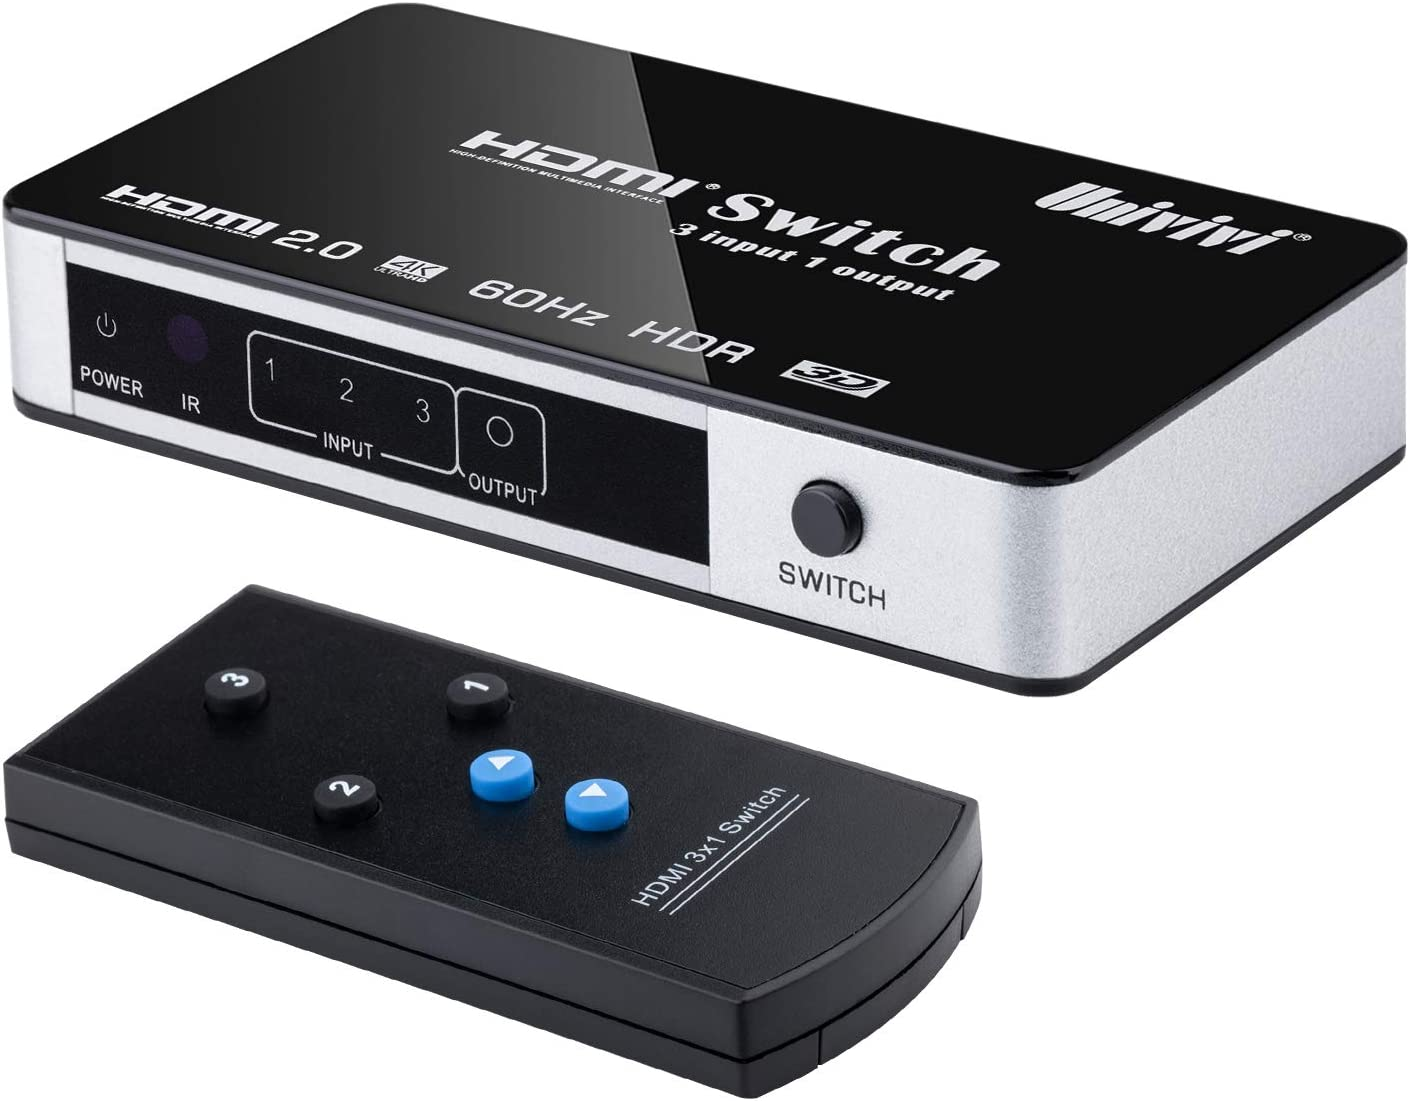 Univivi HDMI Switch 4k@60Hz 3 Port 3 x 1 HDMI 2.0 Switcher with Remote Control and Power Supply - Supports DTS-HD/Dolby-trueHD/LPCM7.1/DTS/Dolby-Ac3/DSD HD(HBR)